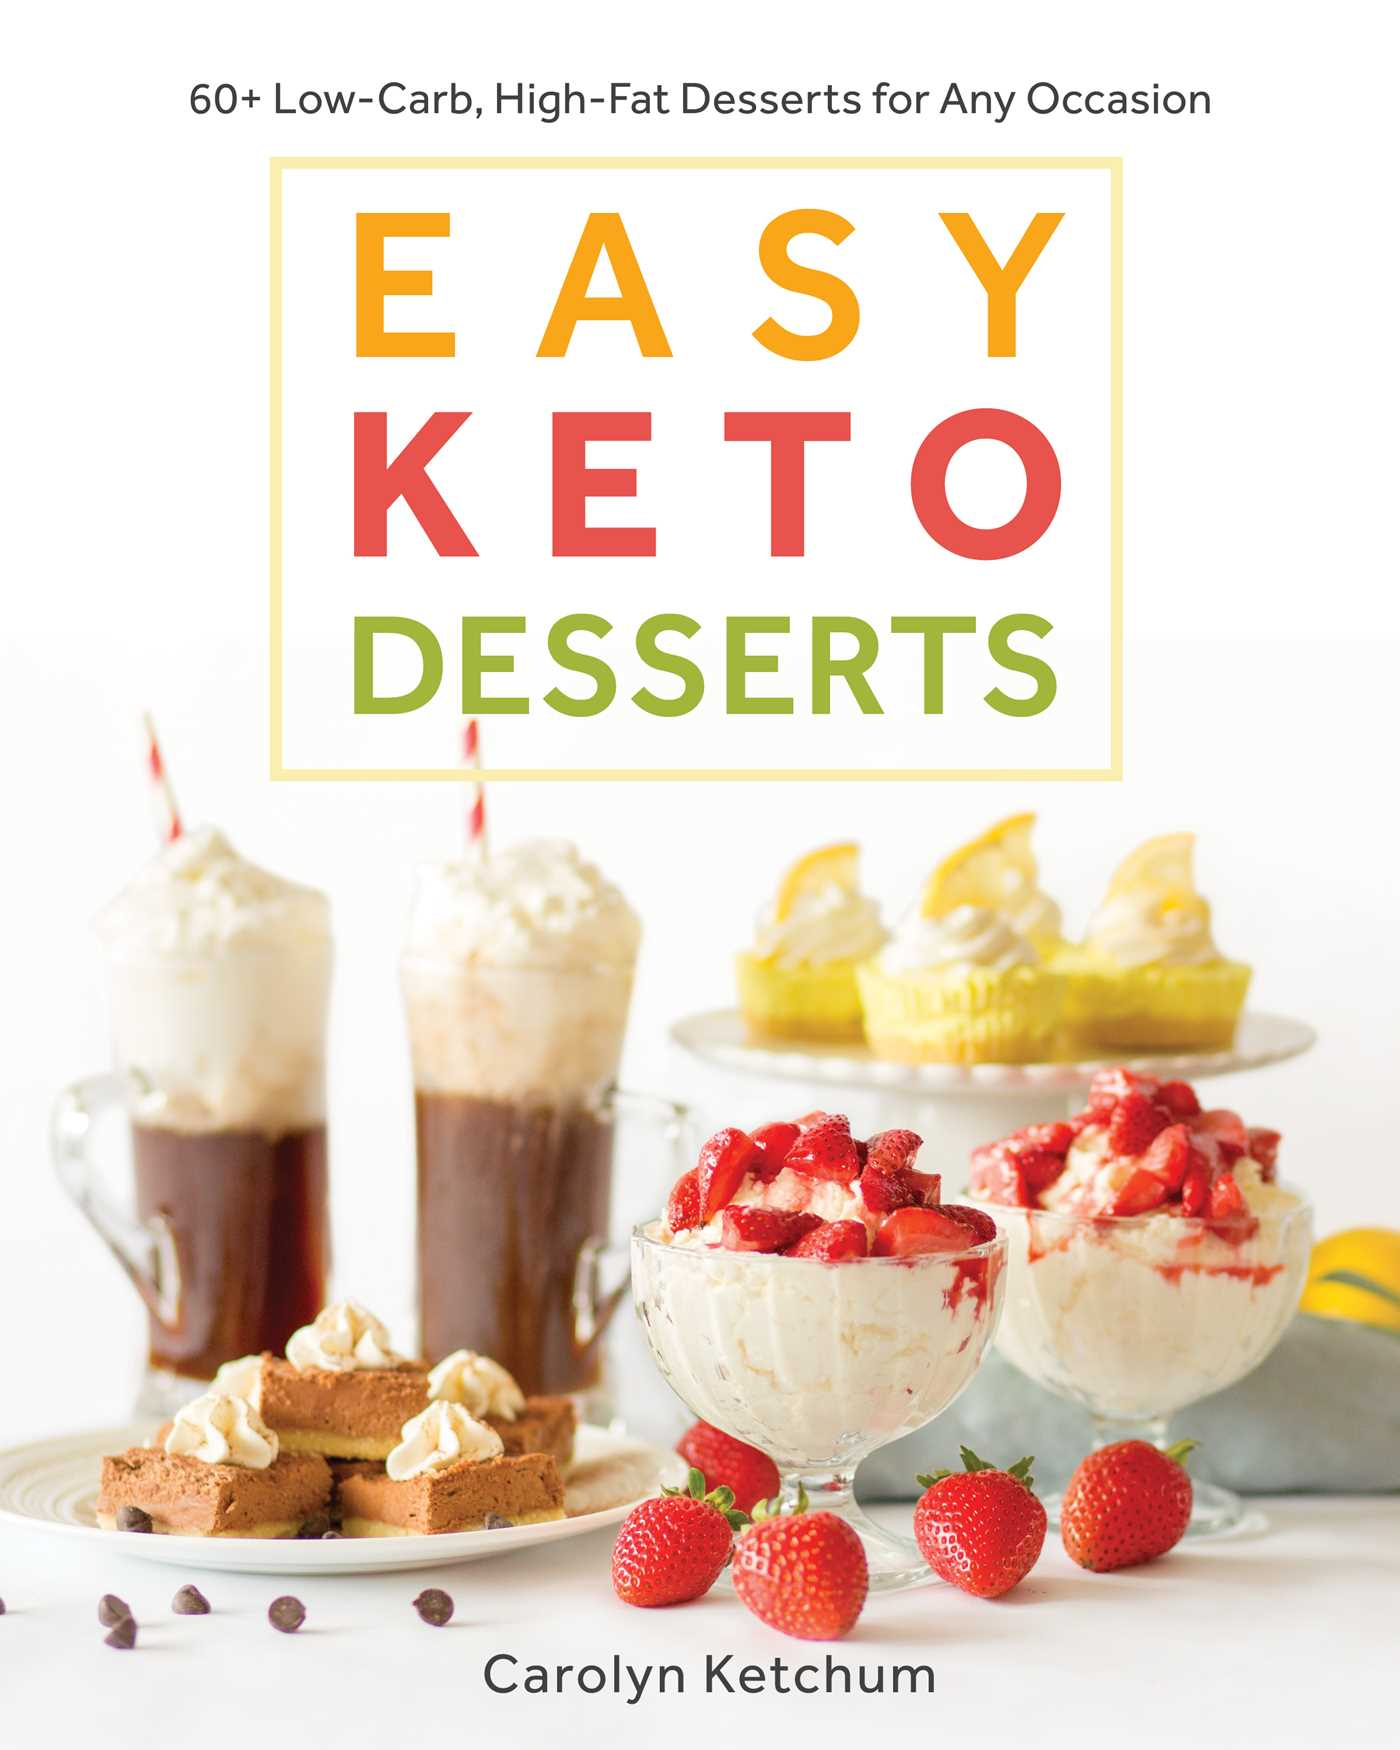 Easy keto desserts 9781628602920 hr